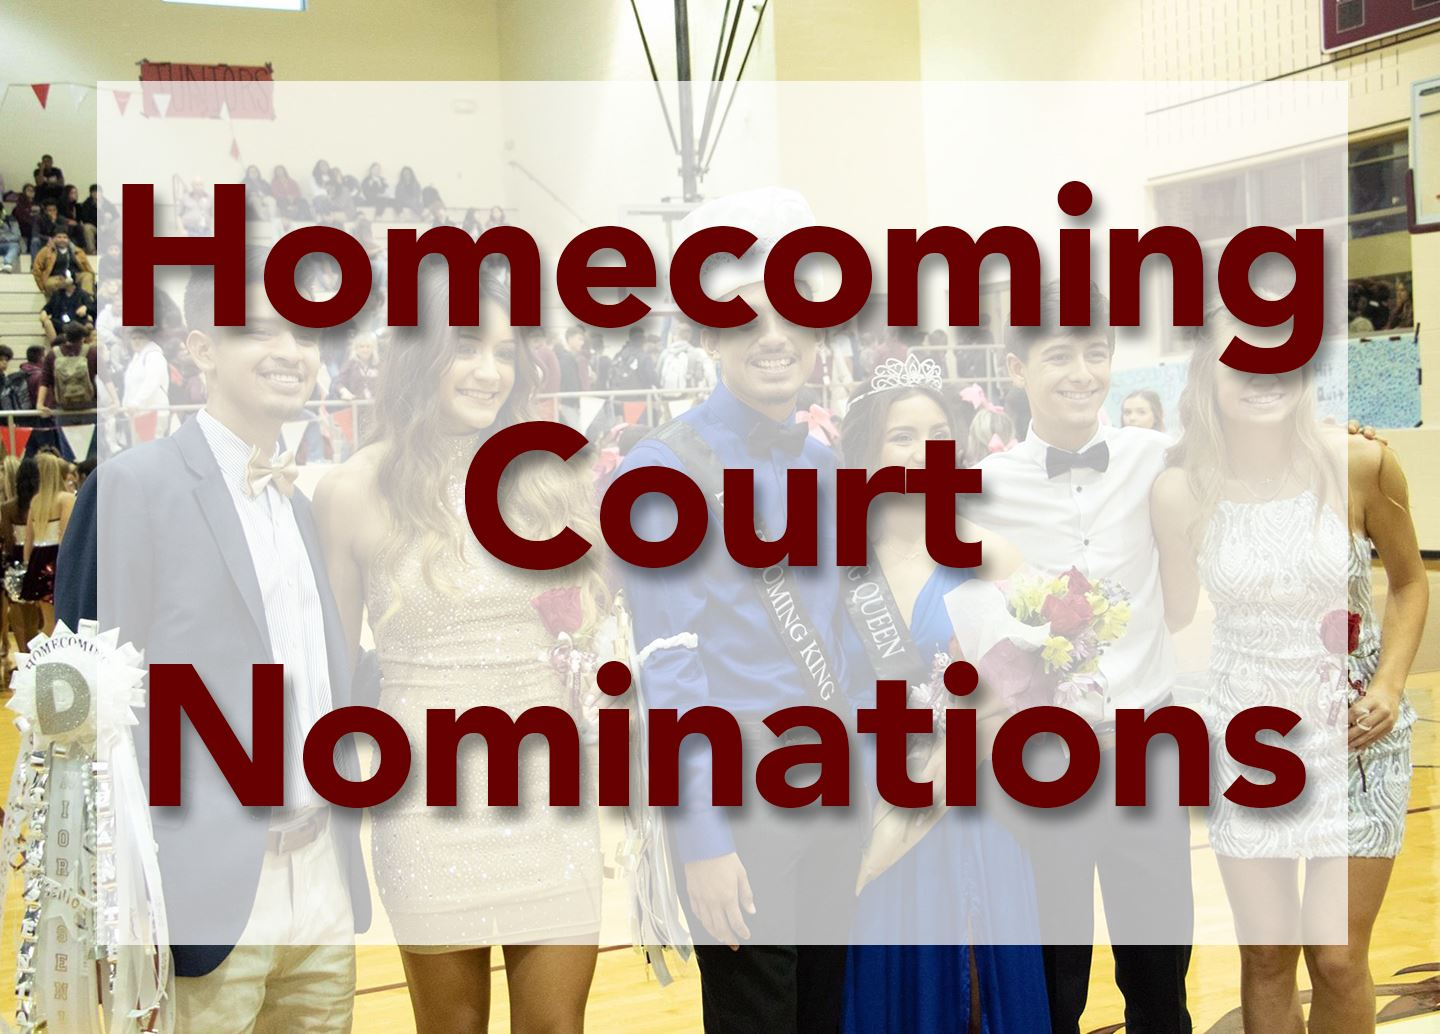 Homecoming Court Nominations